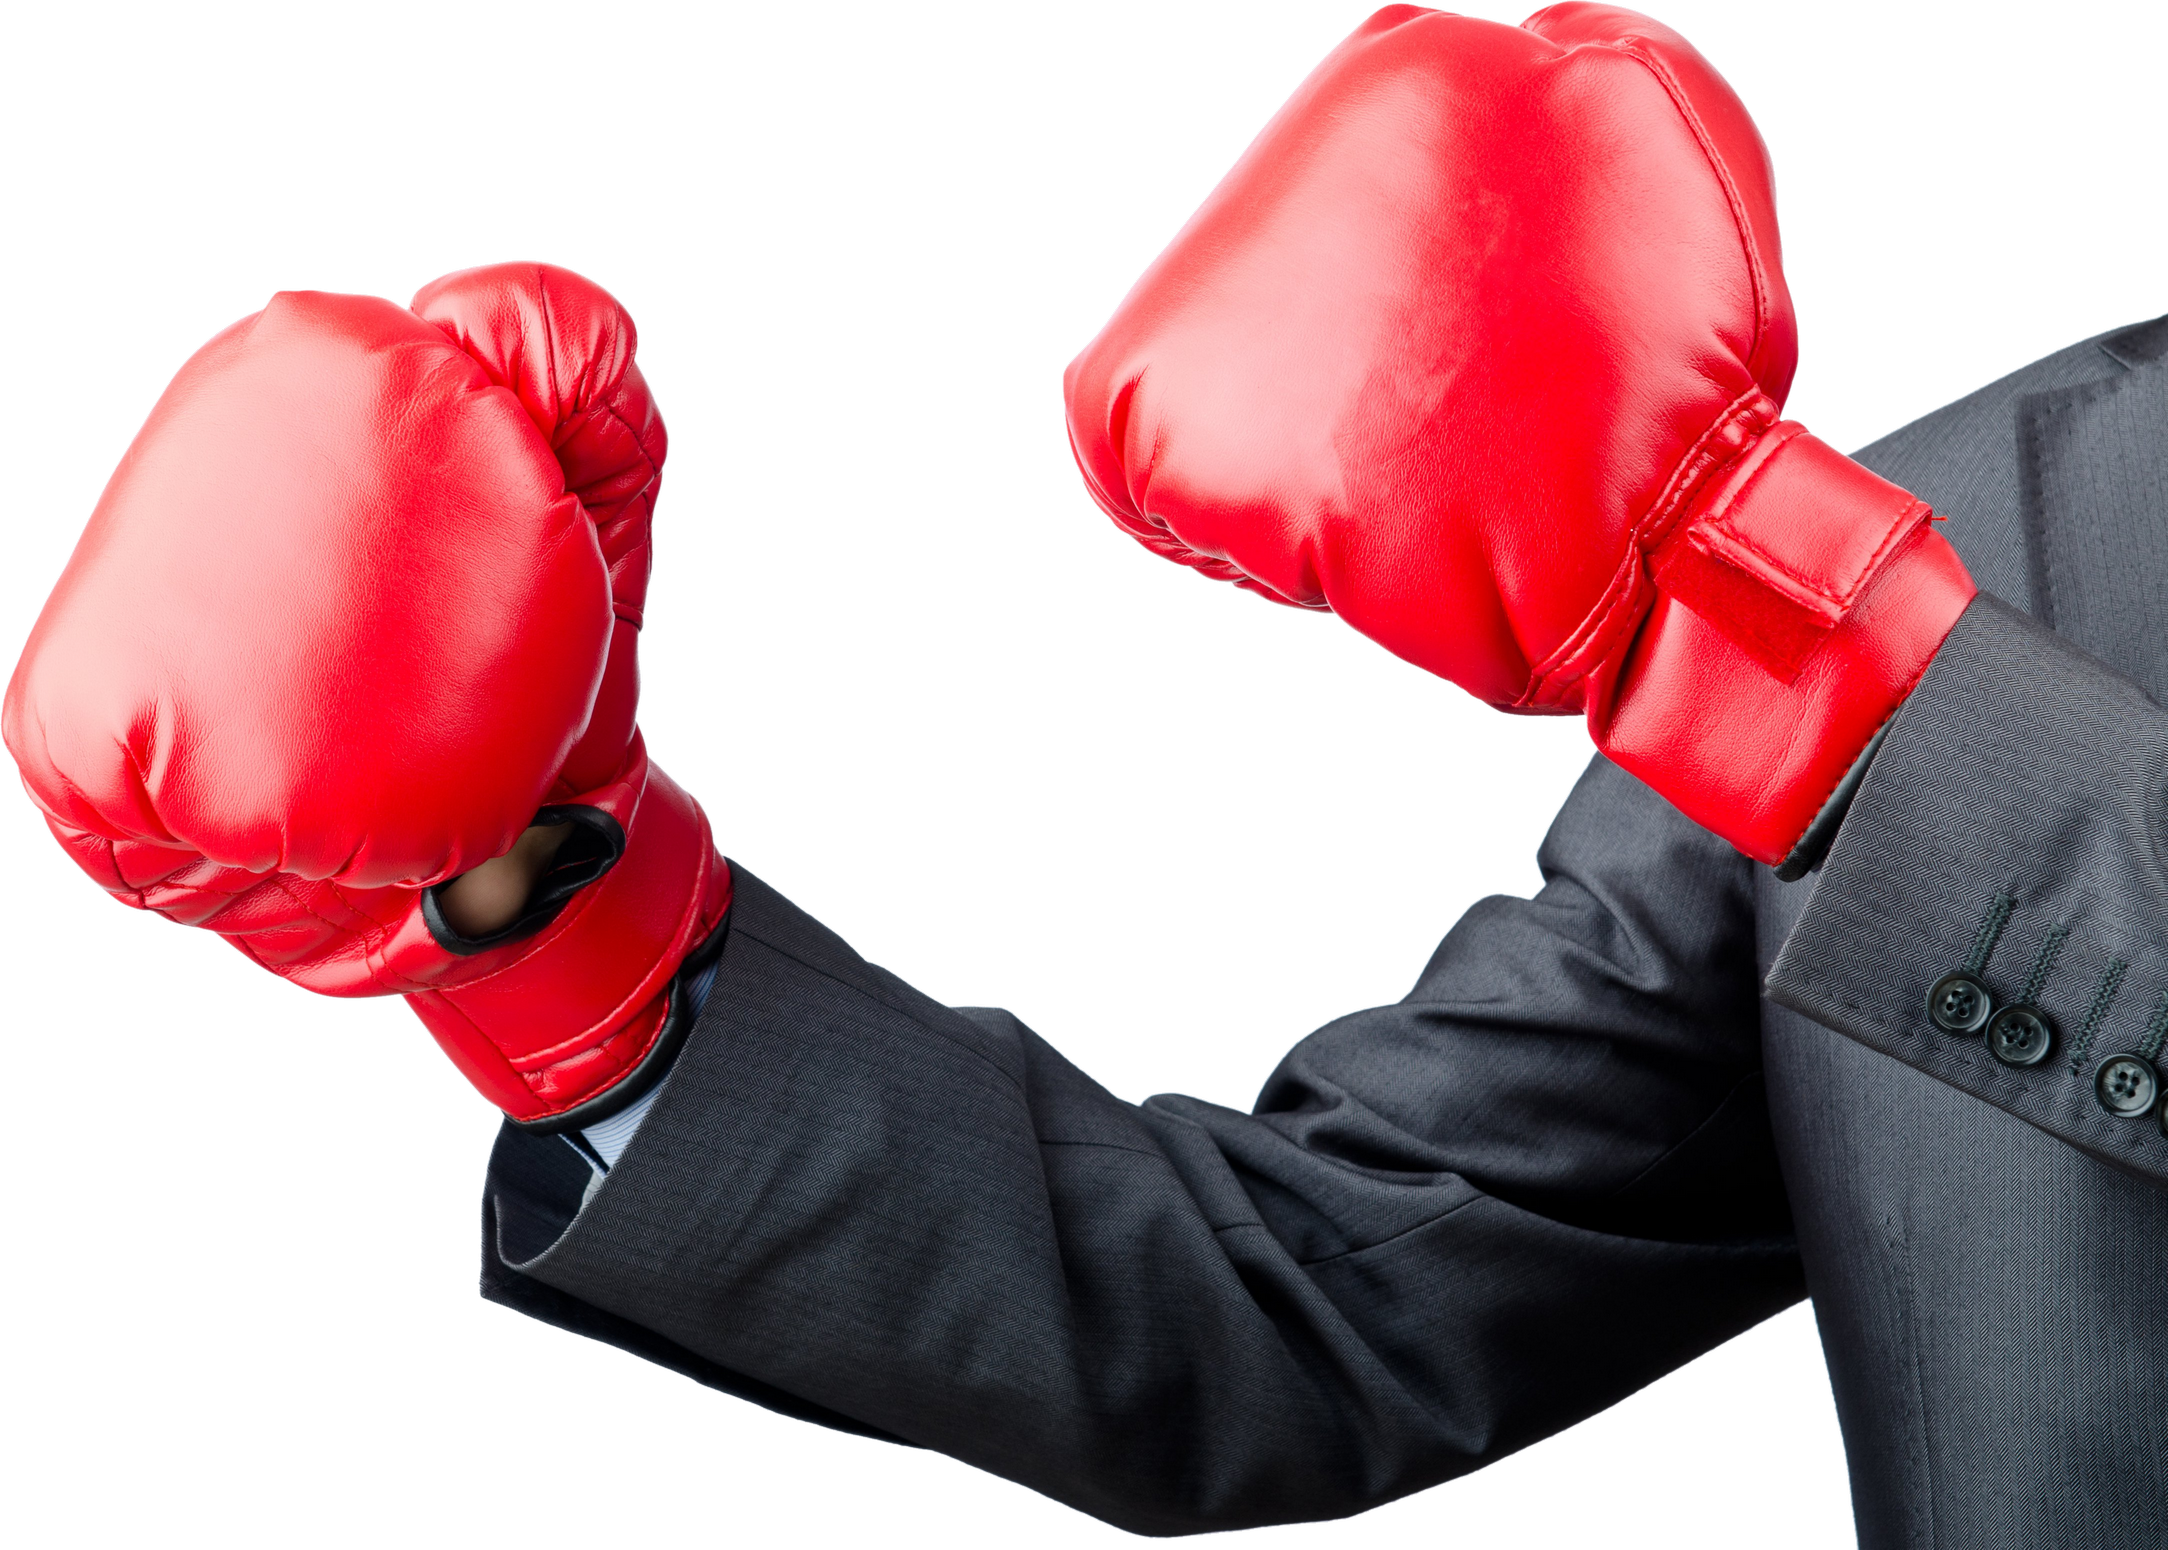 Boxing Glove PNG Image.